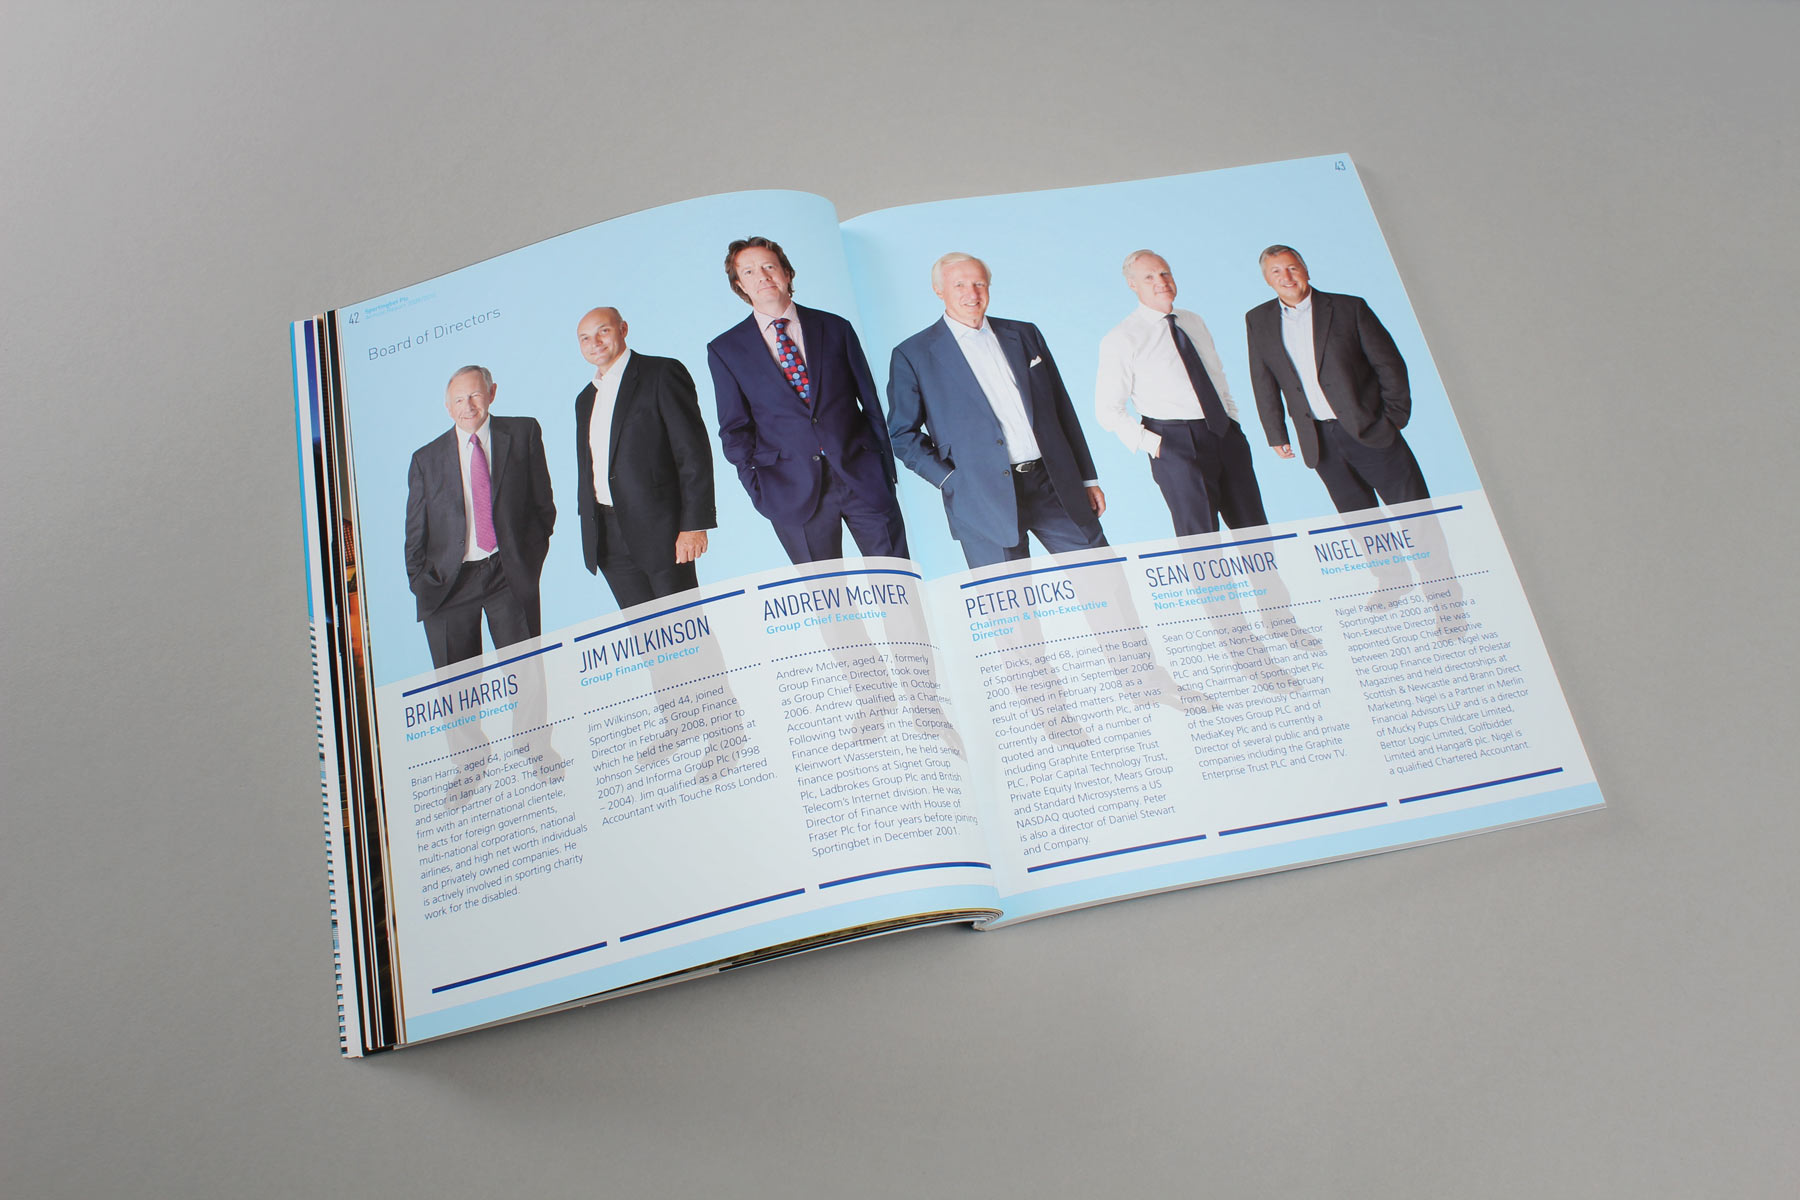 We shot the board members in full length imagery to compliment the visual concept.